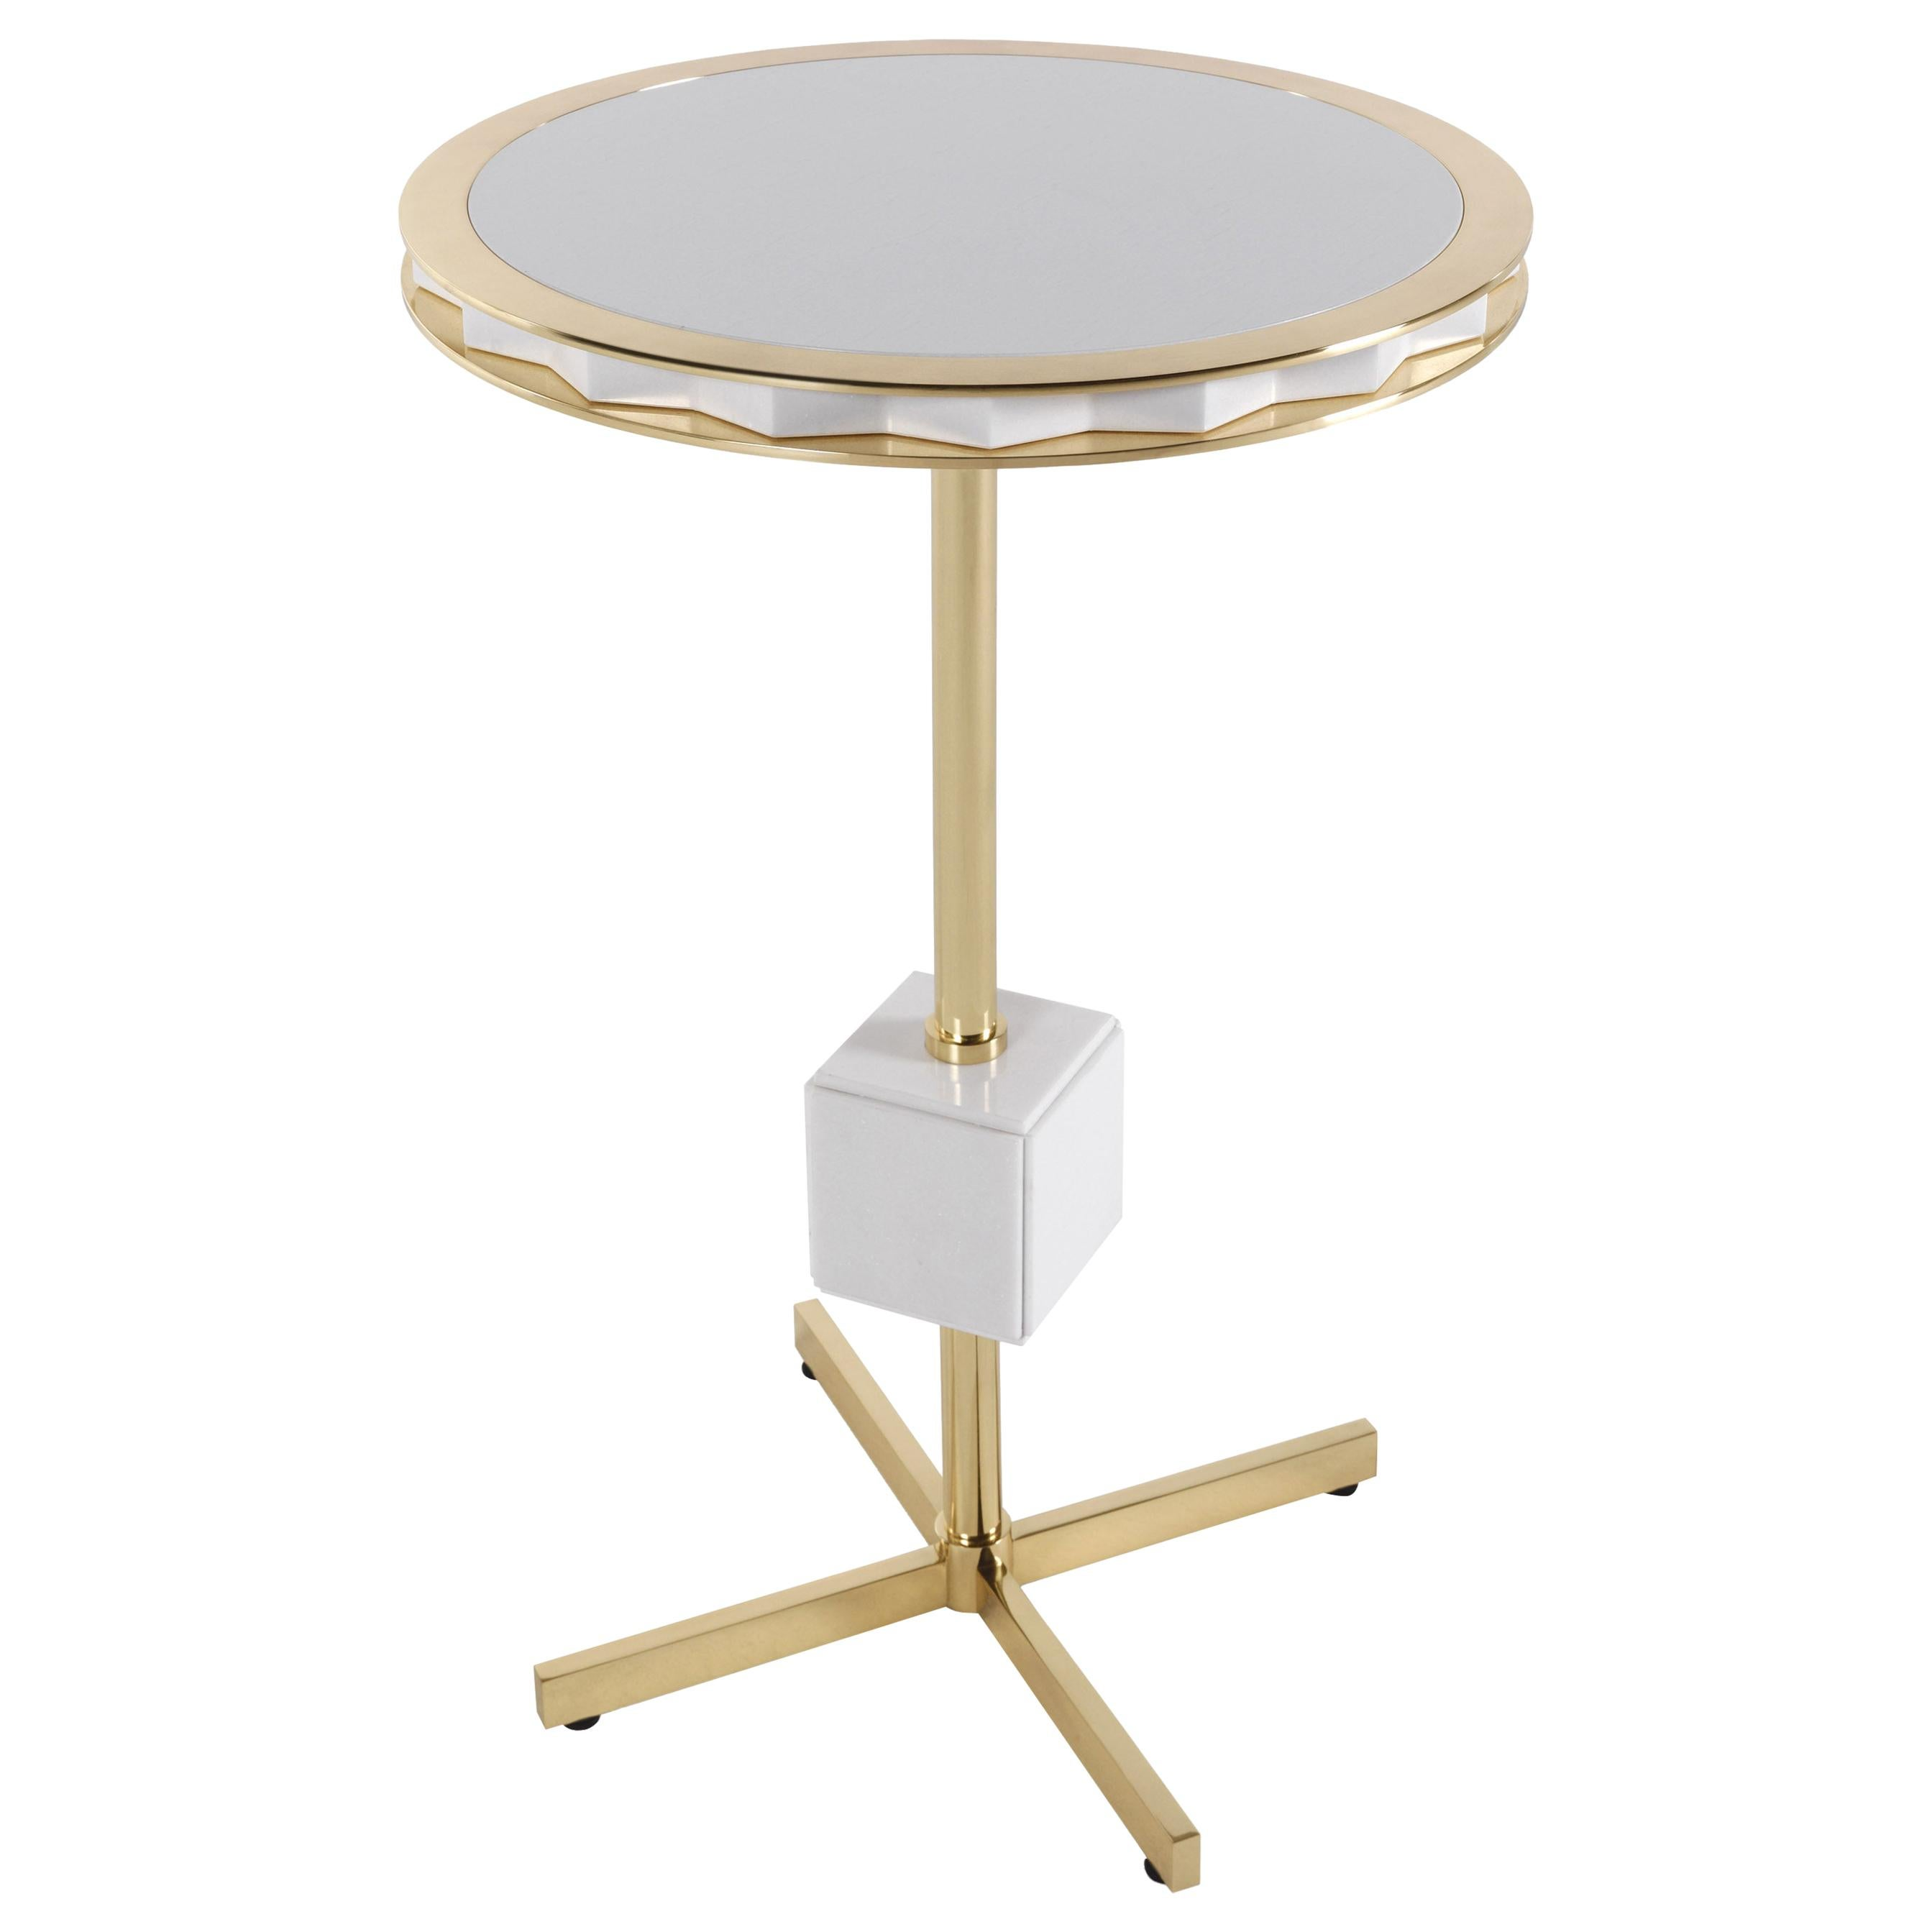 Jumbo Collection Emily Center Table in Brass with Onyx Top